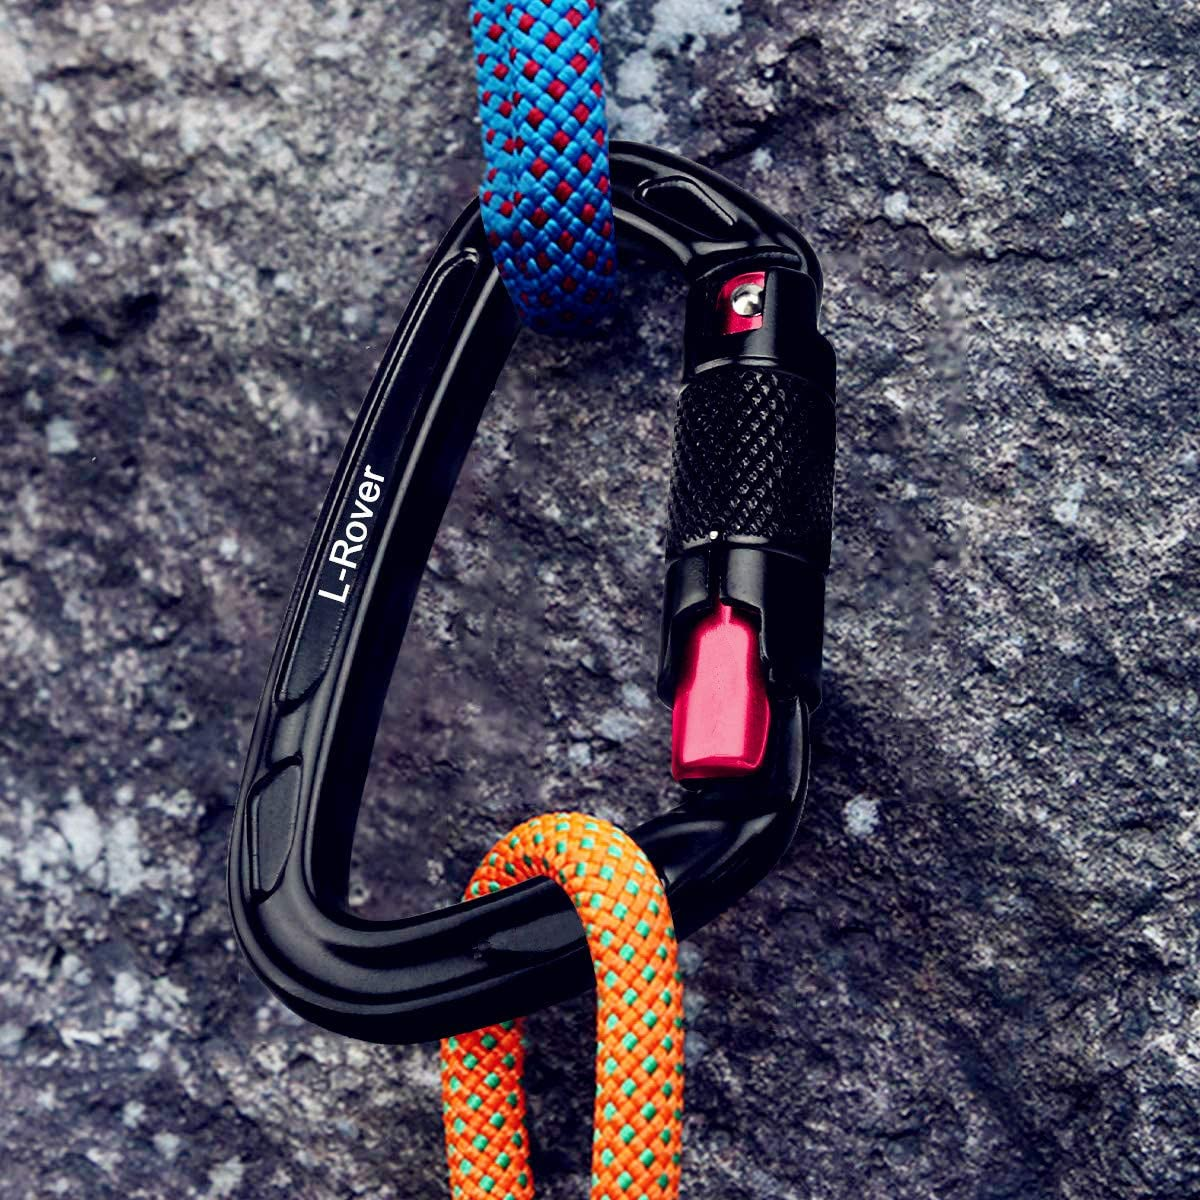 x2//24kN//5400-pound Rating for Hammocks Auto Locking and Heavy Duty Caribeaners L-Rover Ultra Sturdy Twist Lock Climbing Carabiner Clips Rappelling,Working Safely at Height,Camping,Large Size